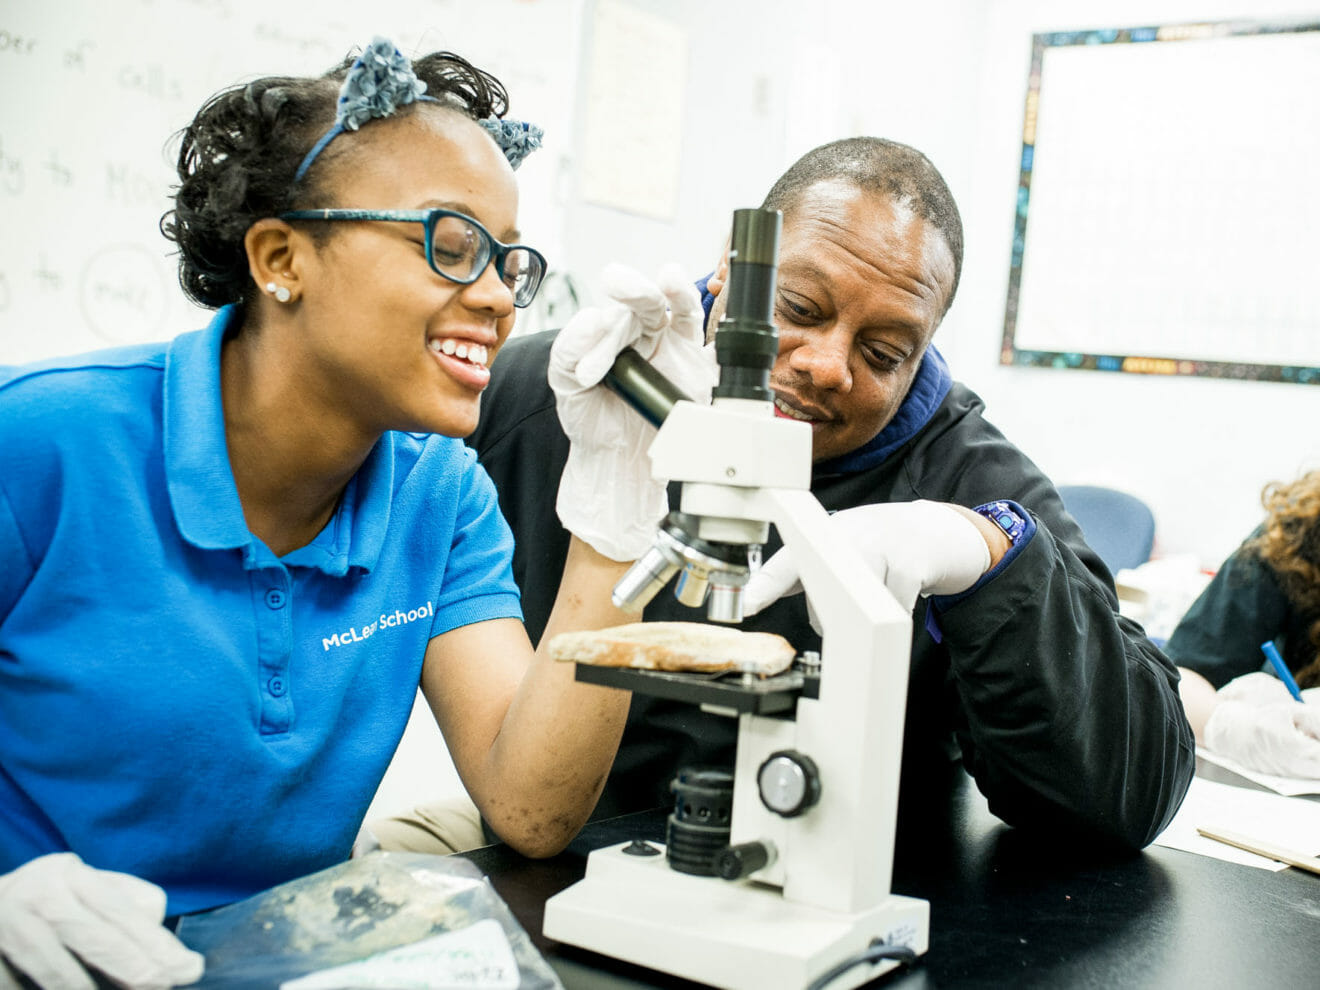 Teacher helps student with microscope